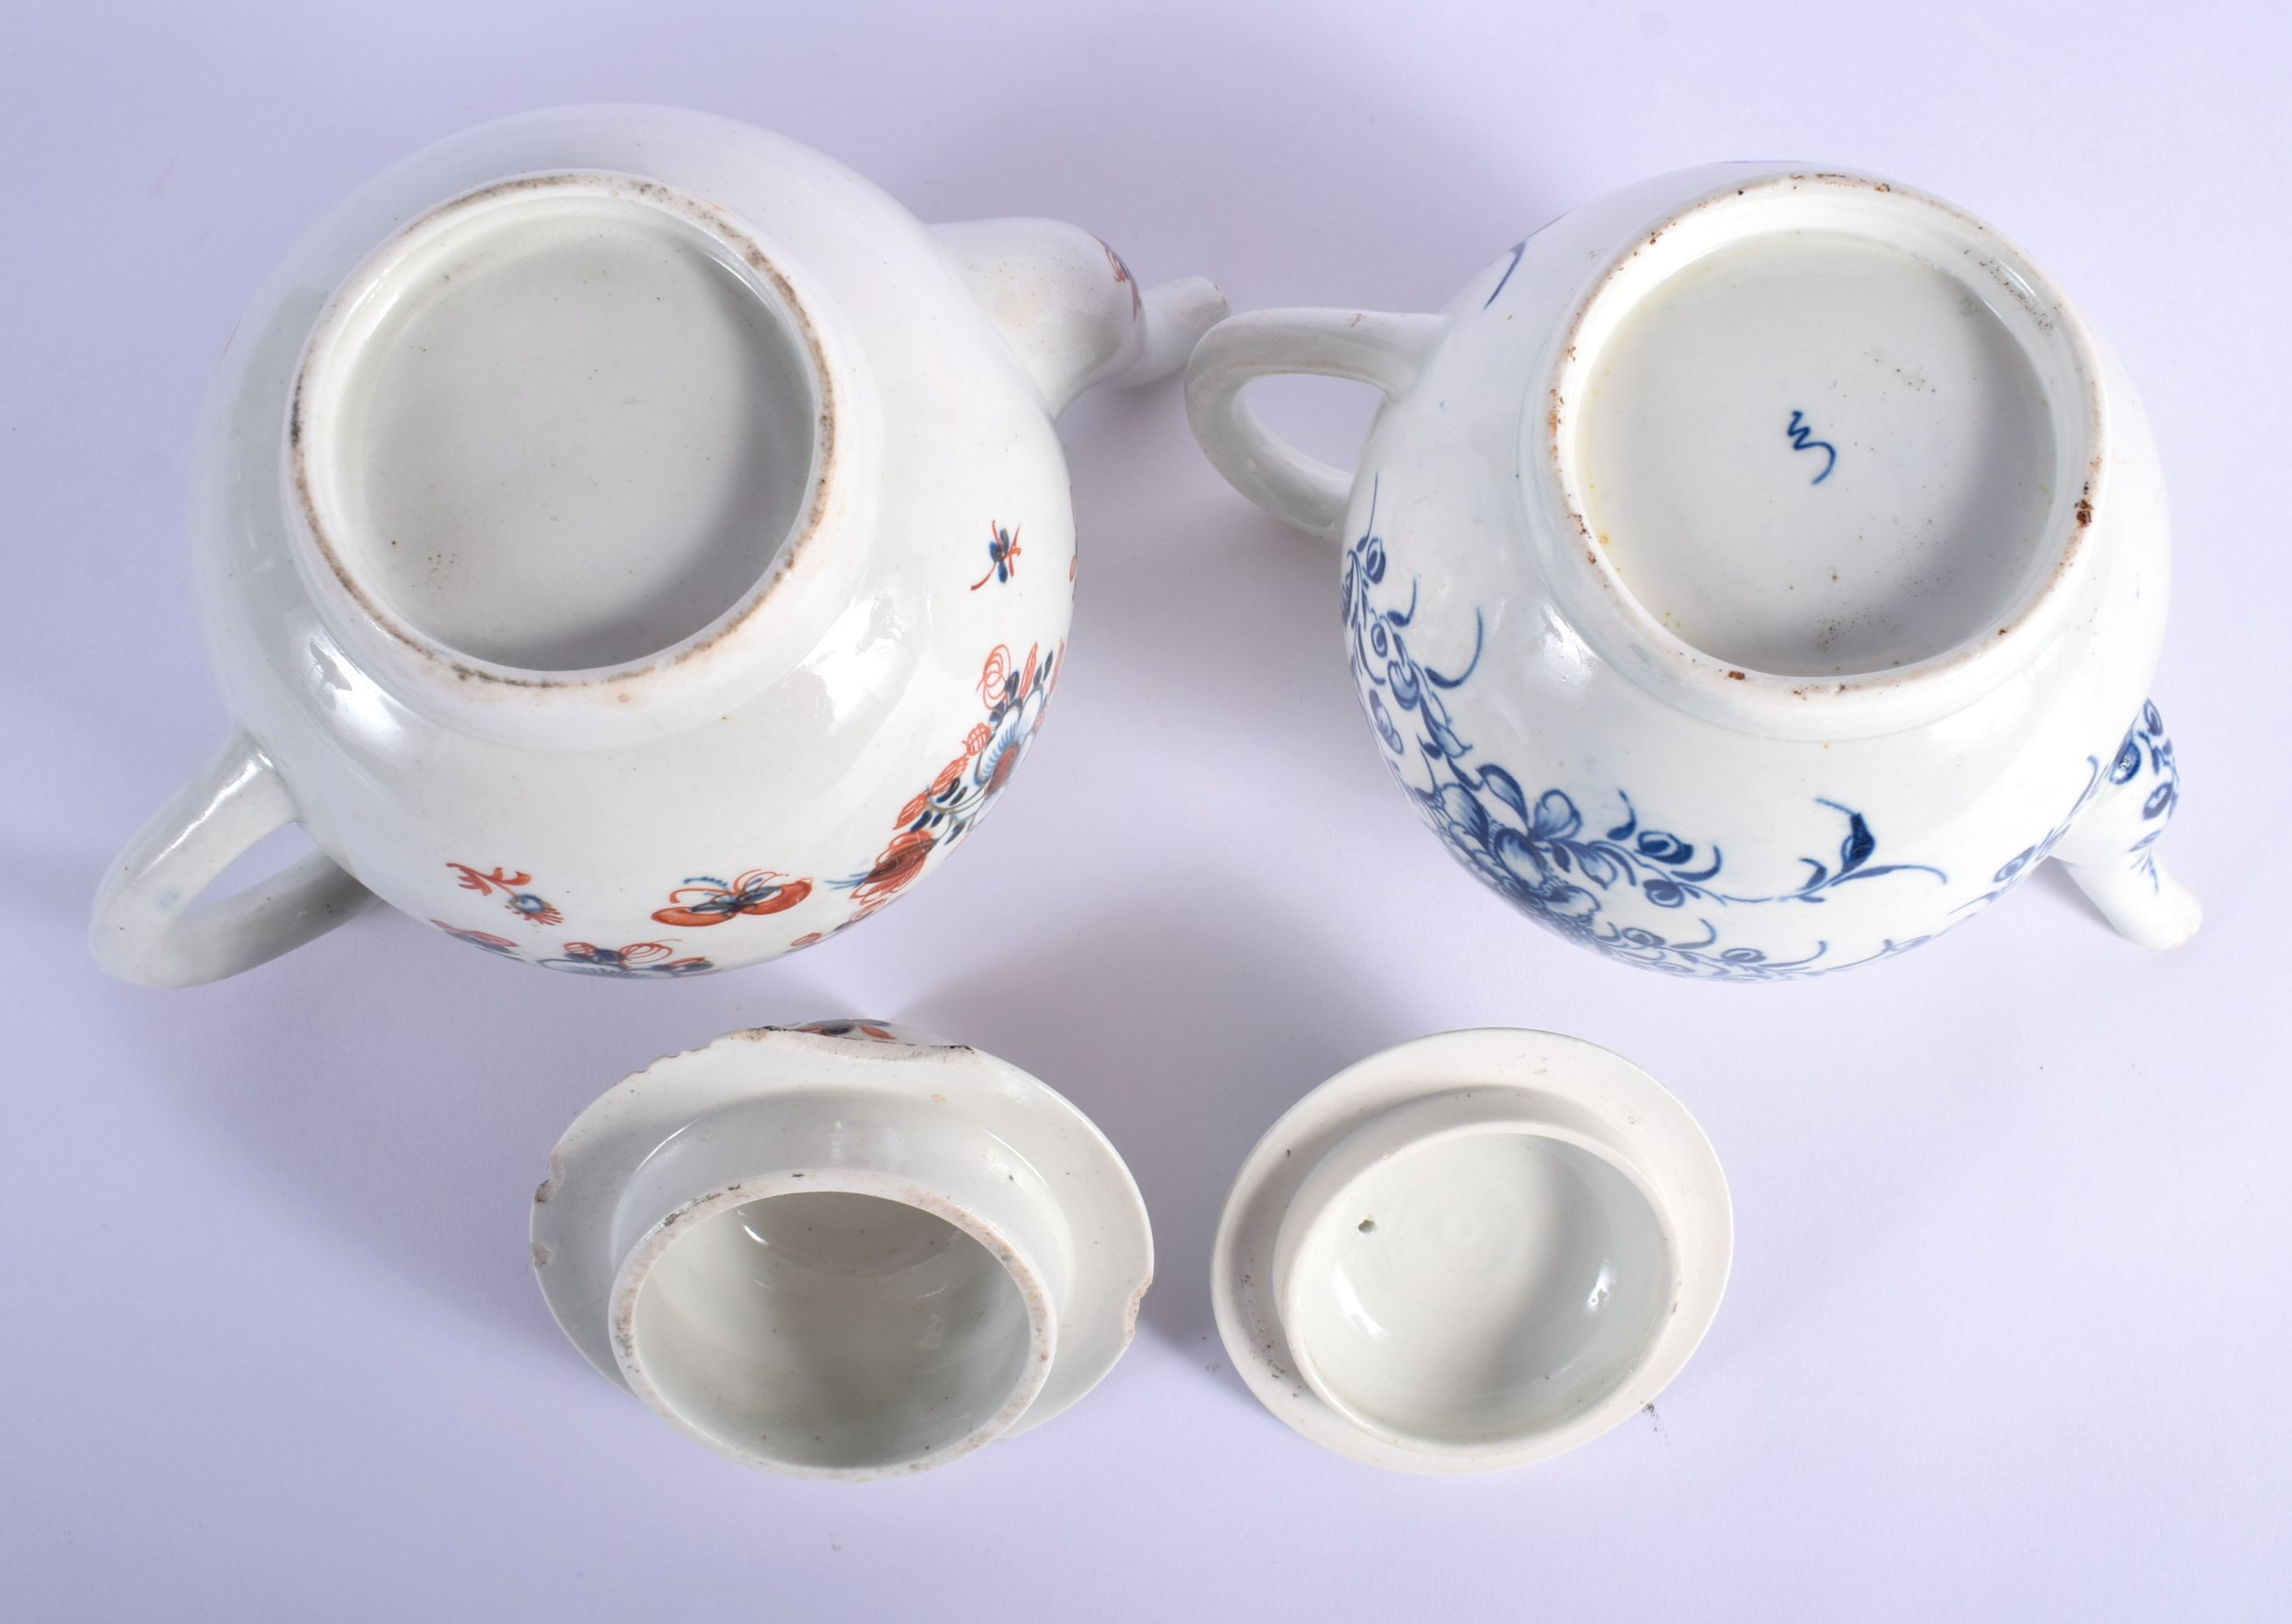 AN 18TH CENTURY WORCESTER MANSFIELD TEAPOT AND COVER together with a Liverpool overglazed teapot and - Image 4 of 4